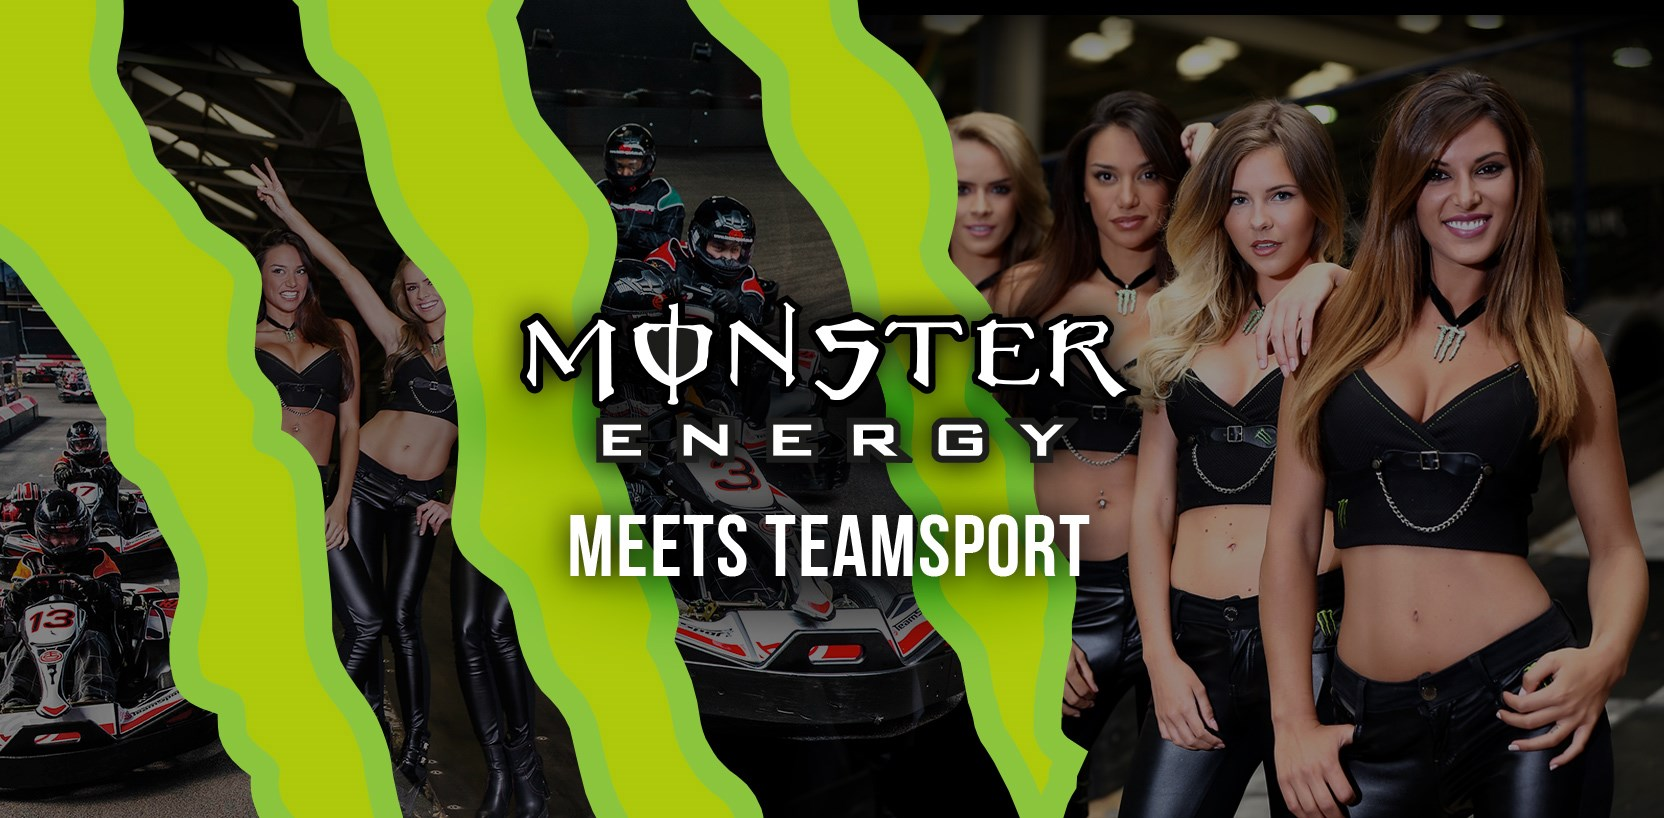 Monster_Energy_Meets_TeamSport.jpg